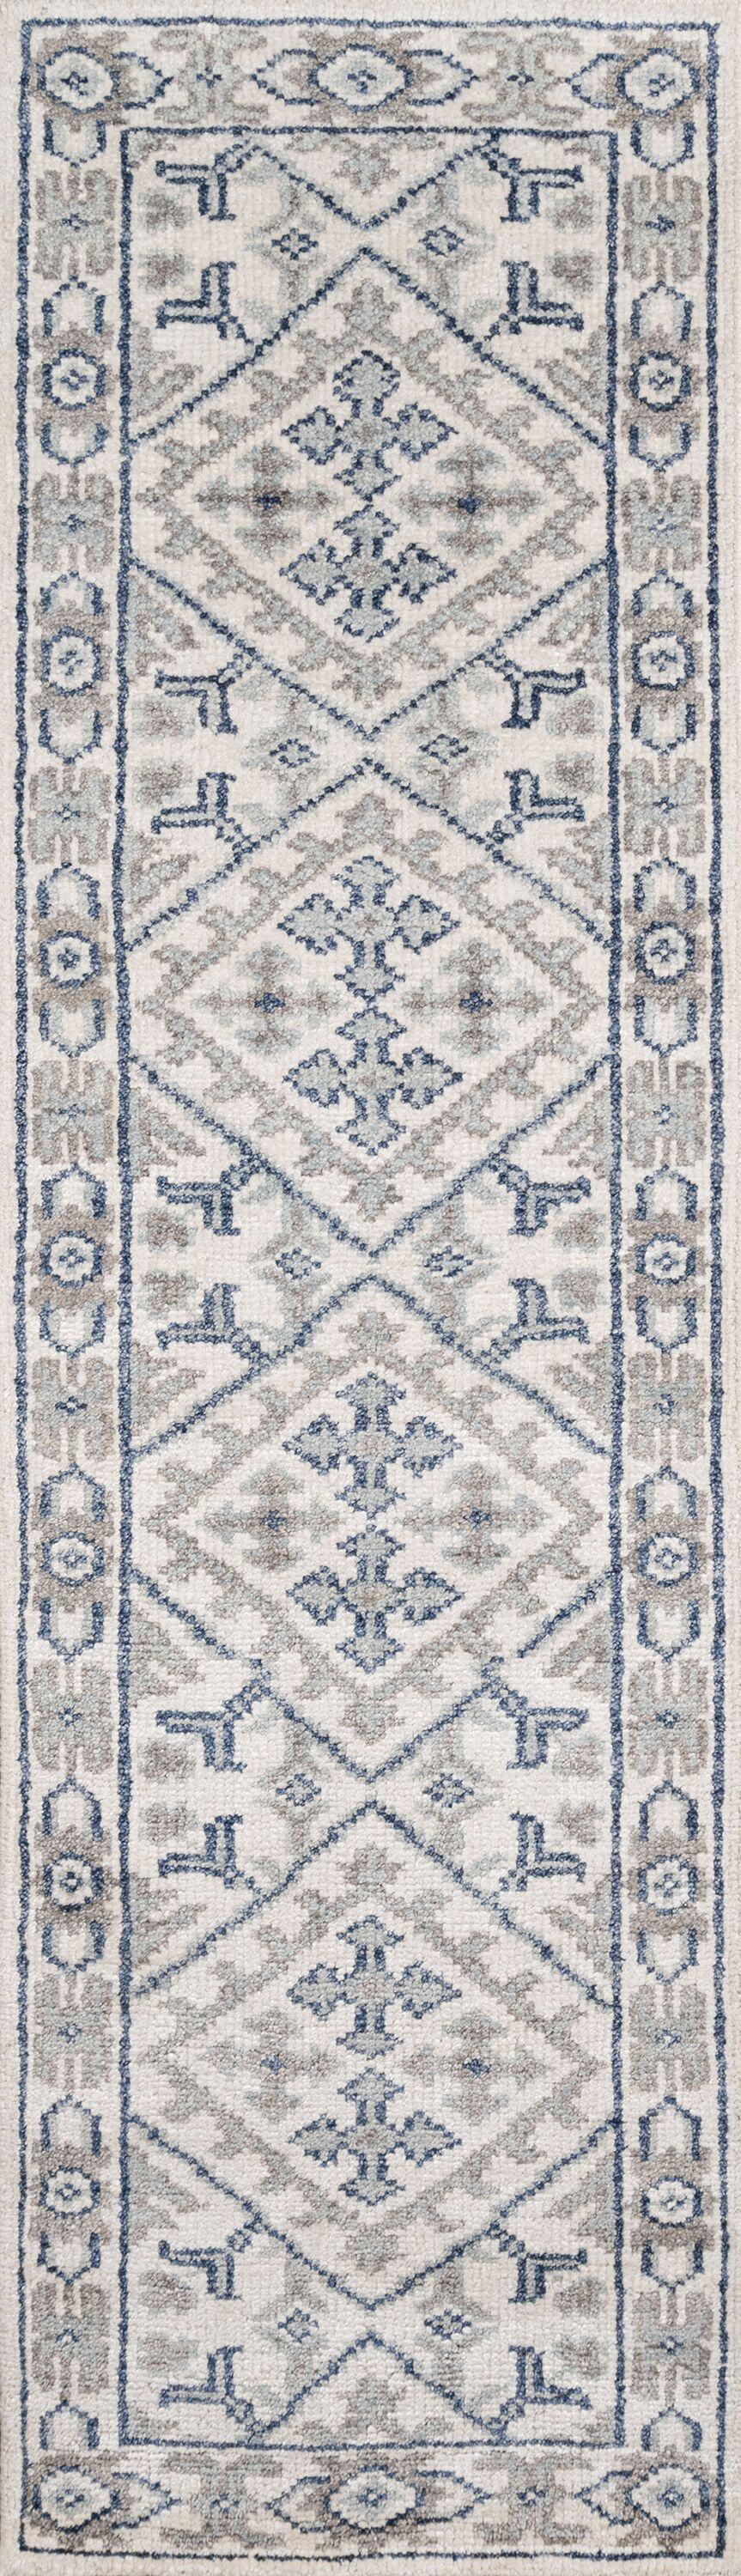 Zoey Hand-Knotted Ivory/Gray Area Rug Rug Size: Runner 2'3